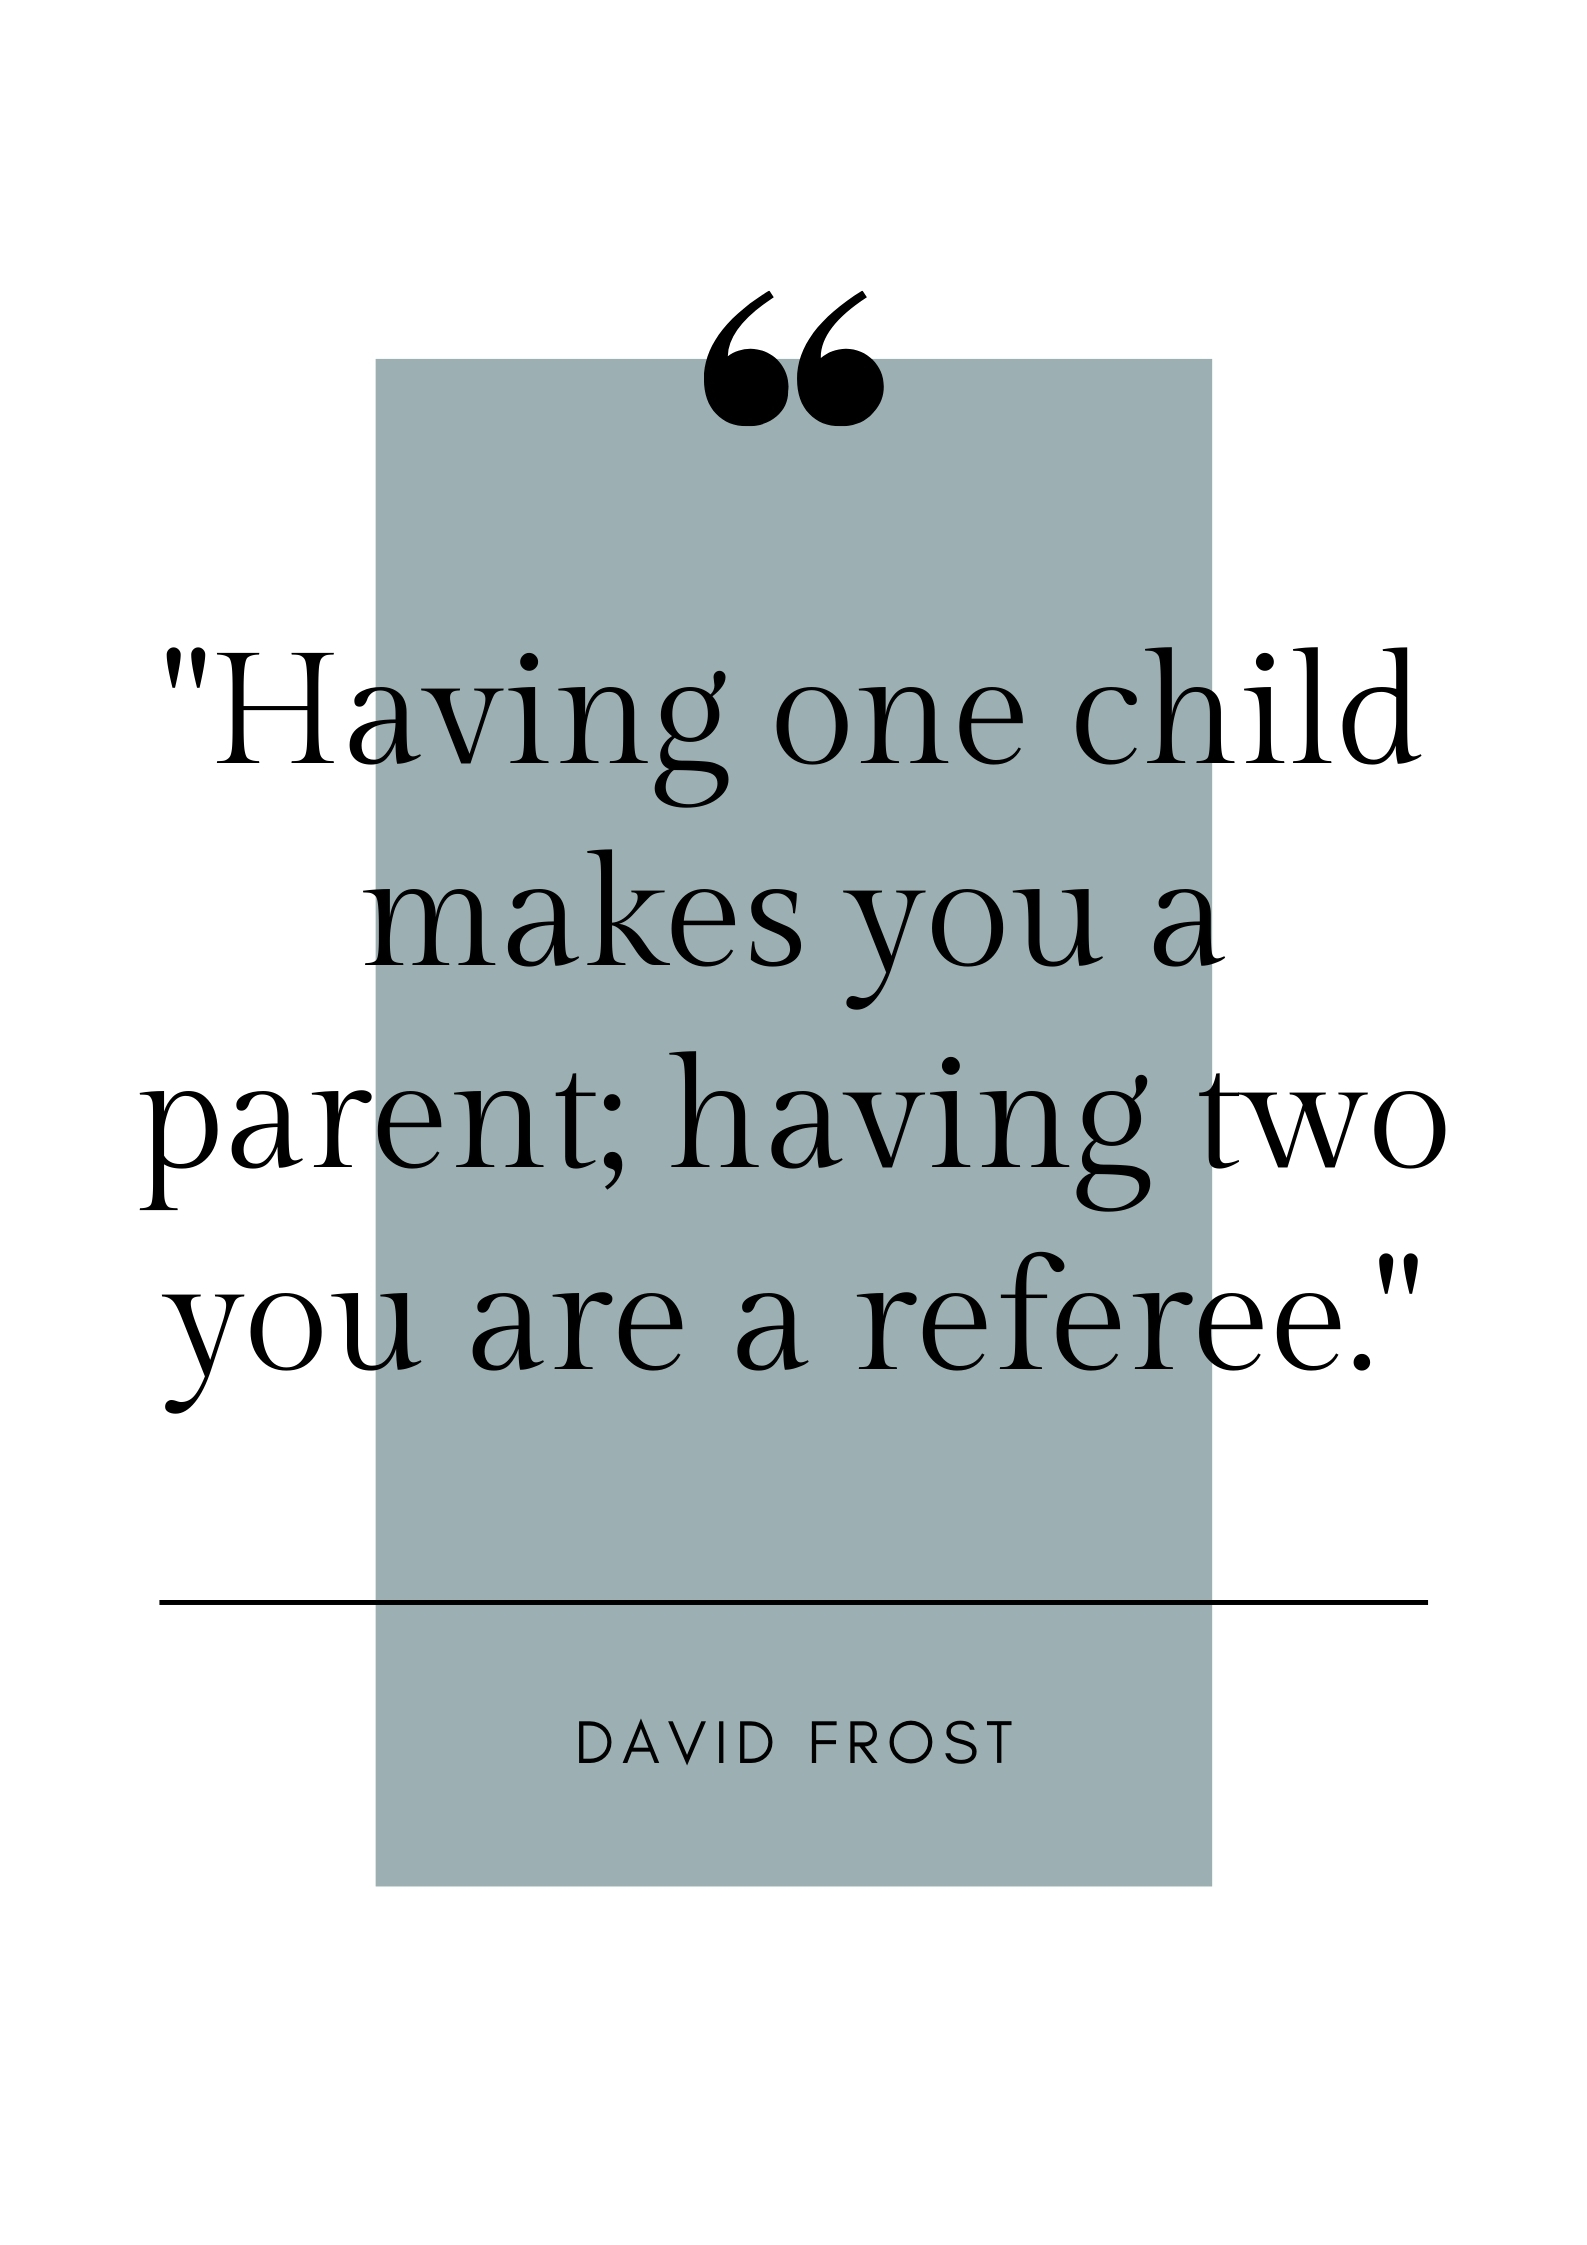 david frost parenting quote